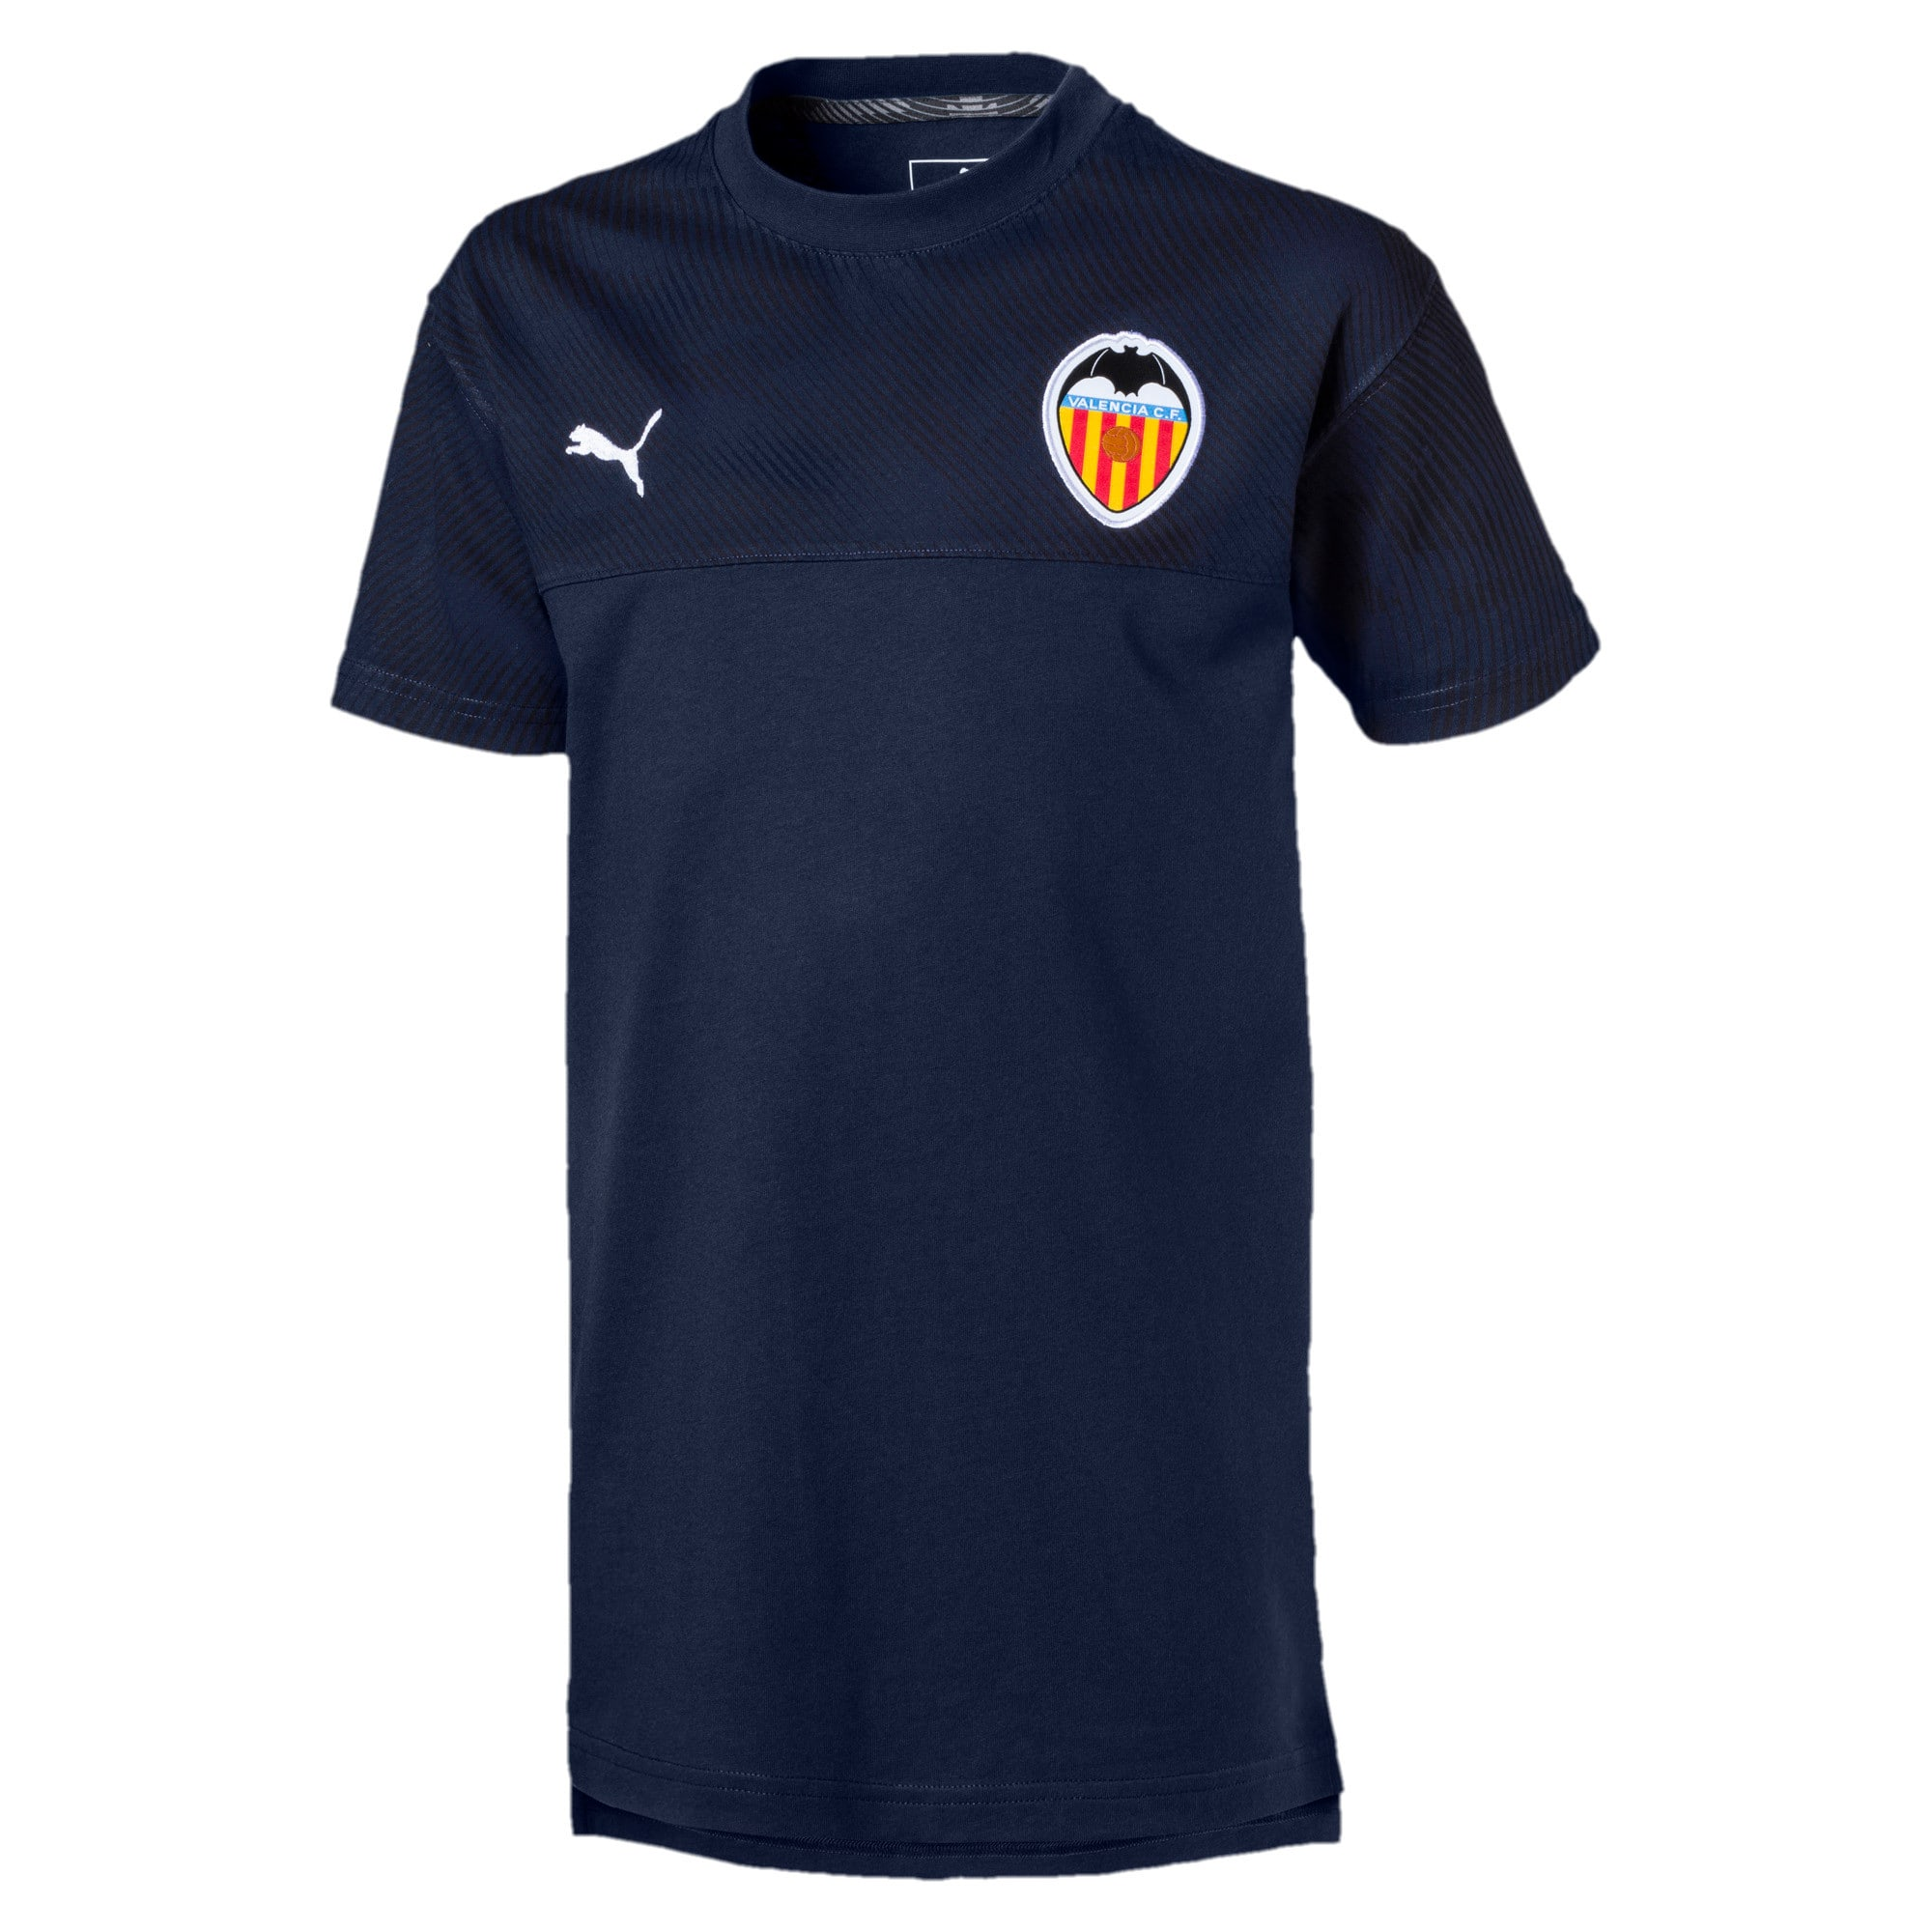 Thumbnail 1 of Valencia CF Casuals Kinder T-Shirt, Peacoat, medium